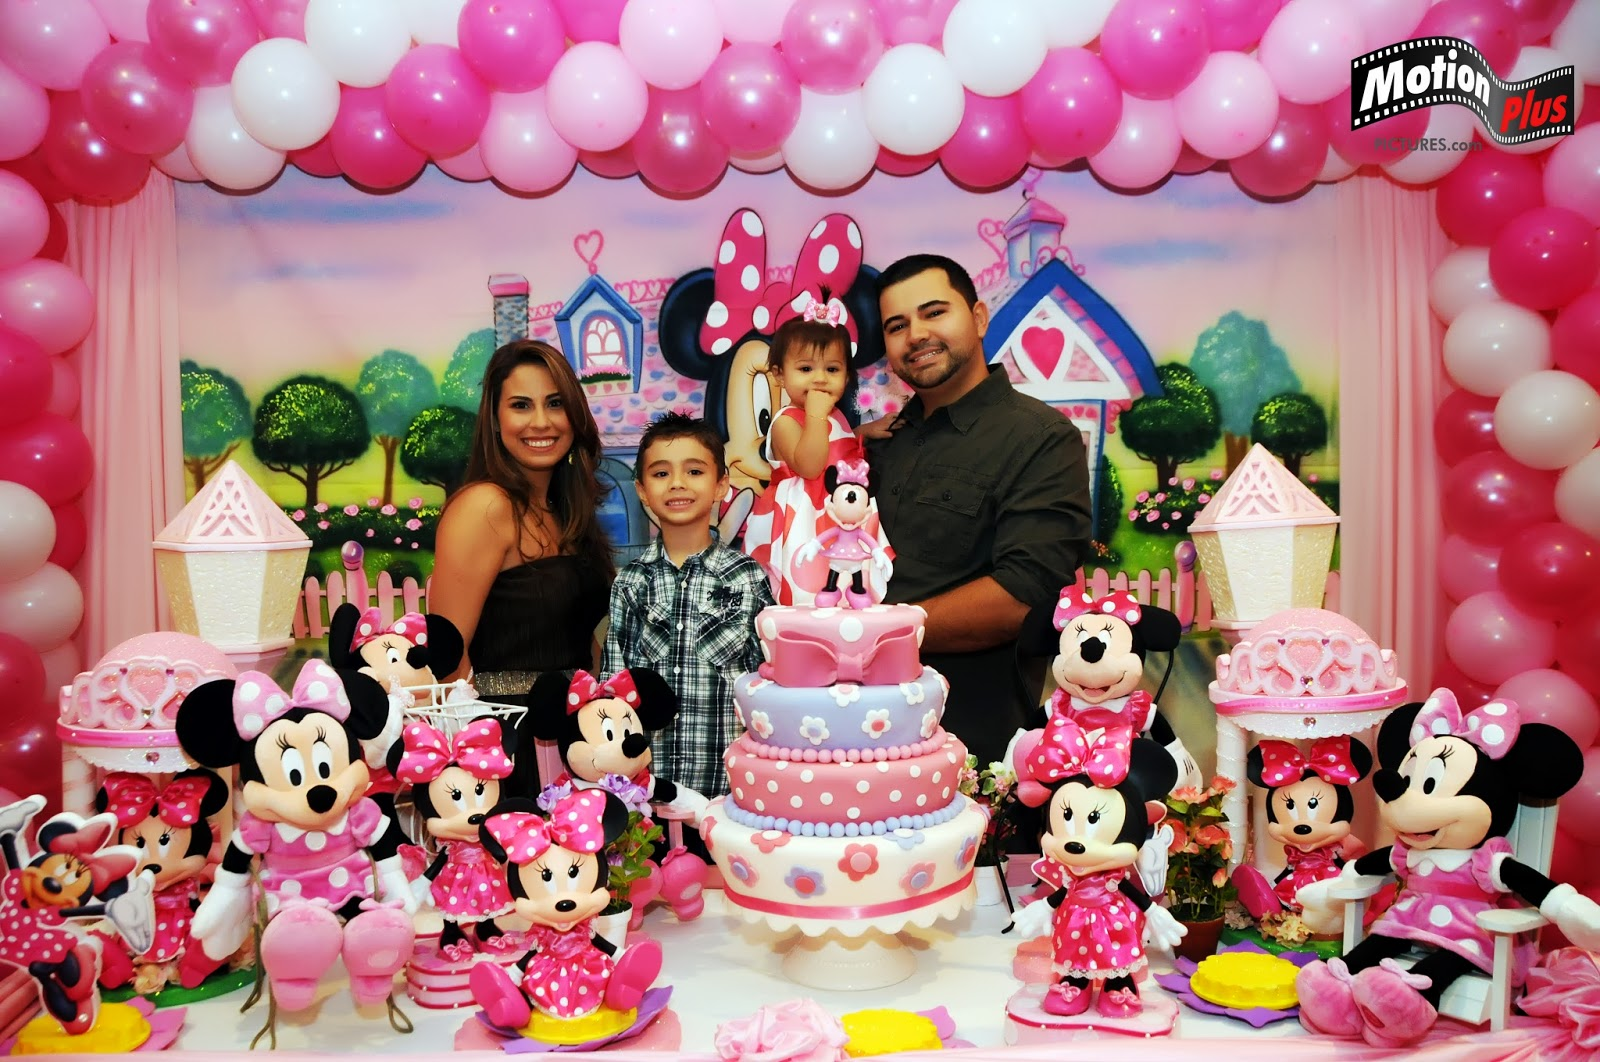 Birthday Birthday Party Ideas: Motion Plus Pictures: Minnie Themed Birthday Party Ideas